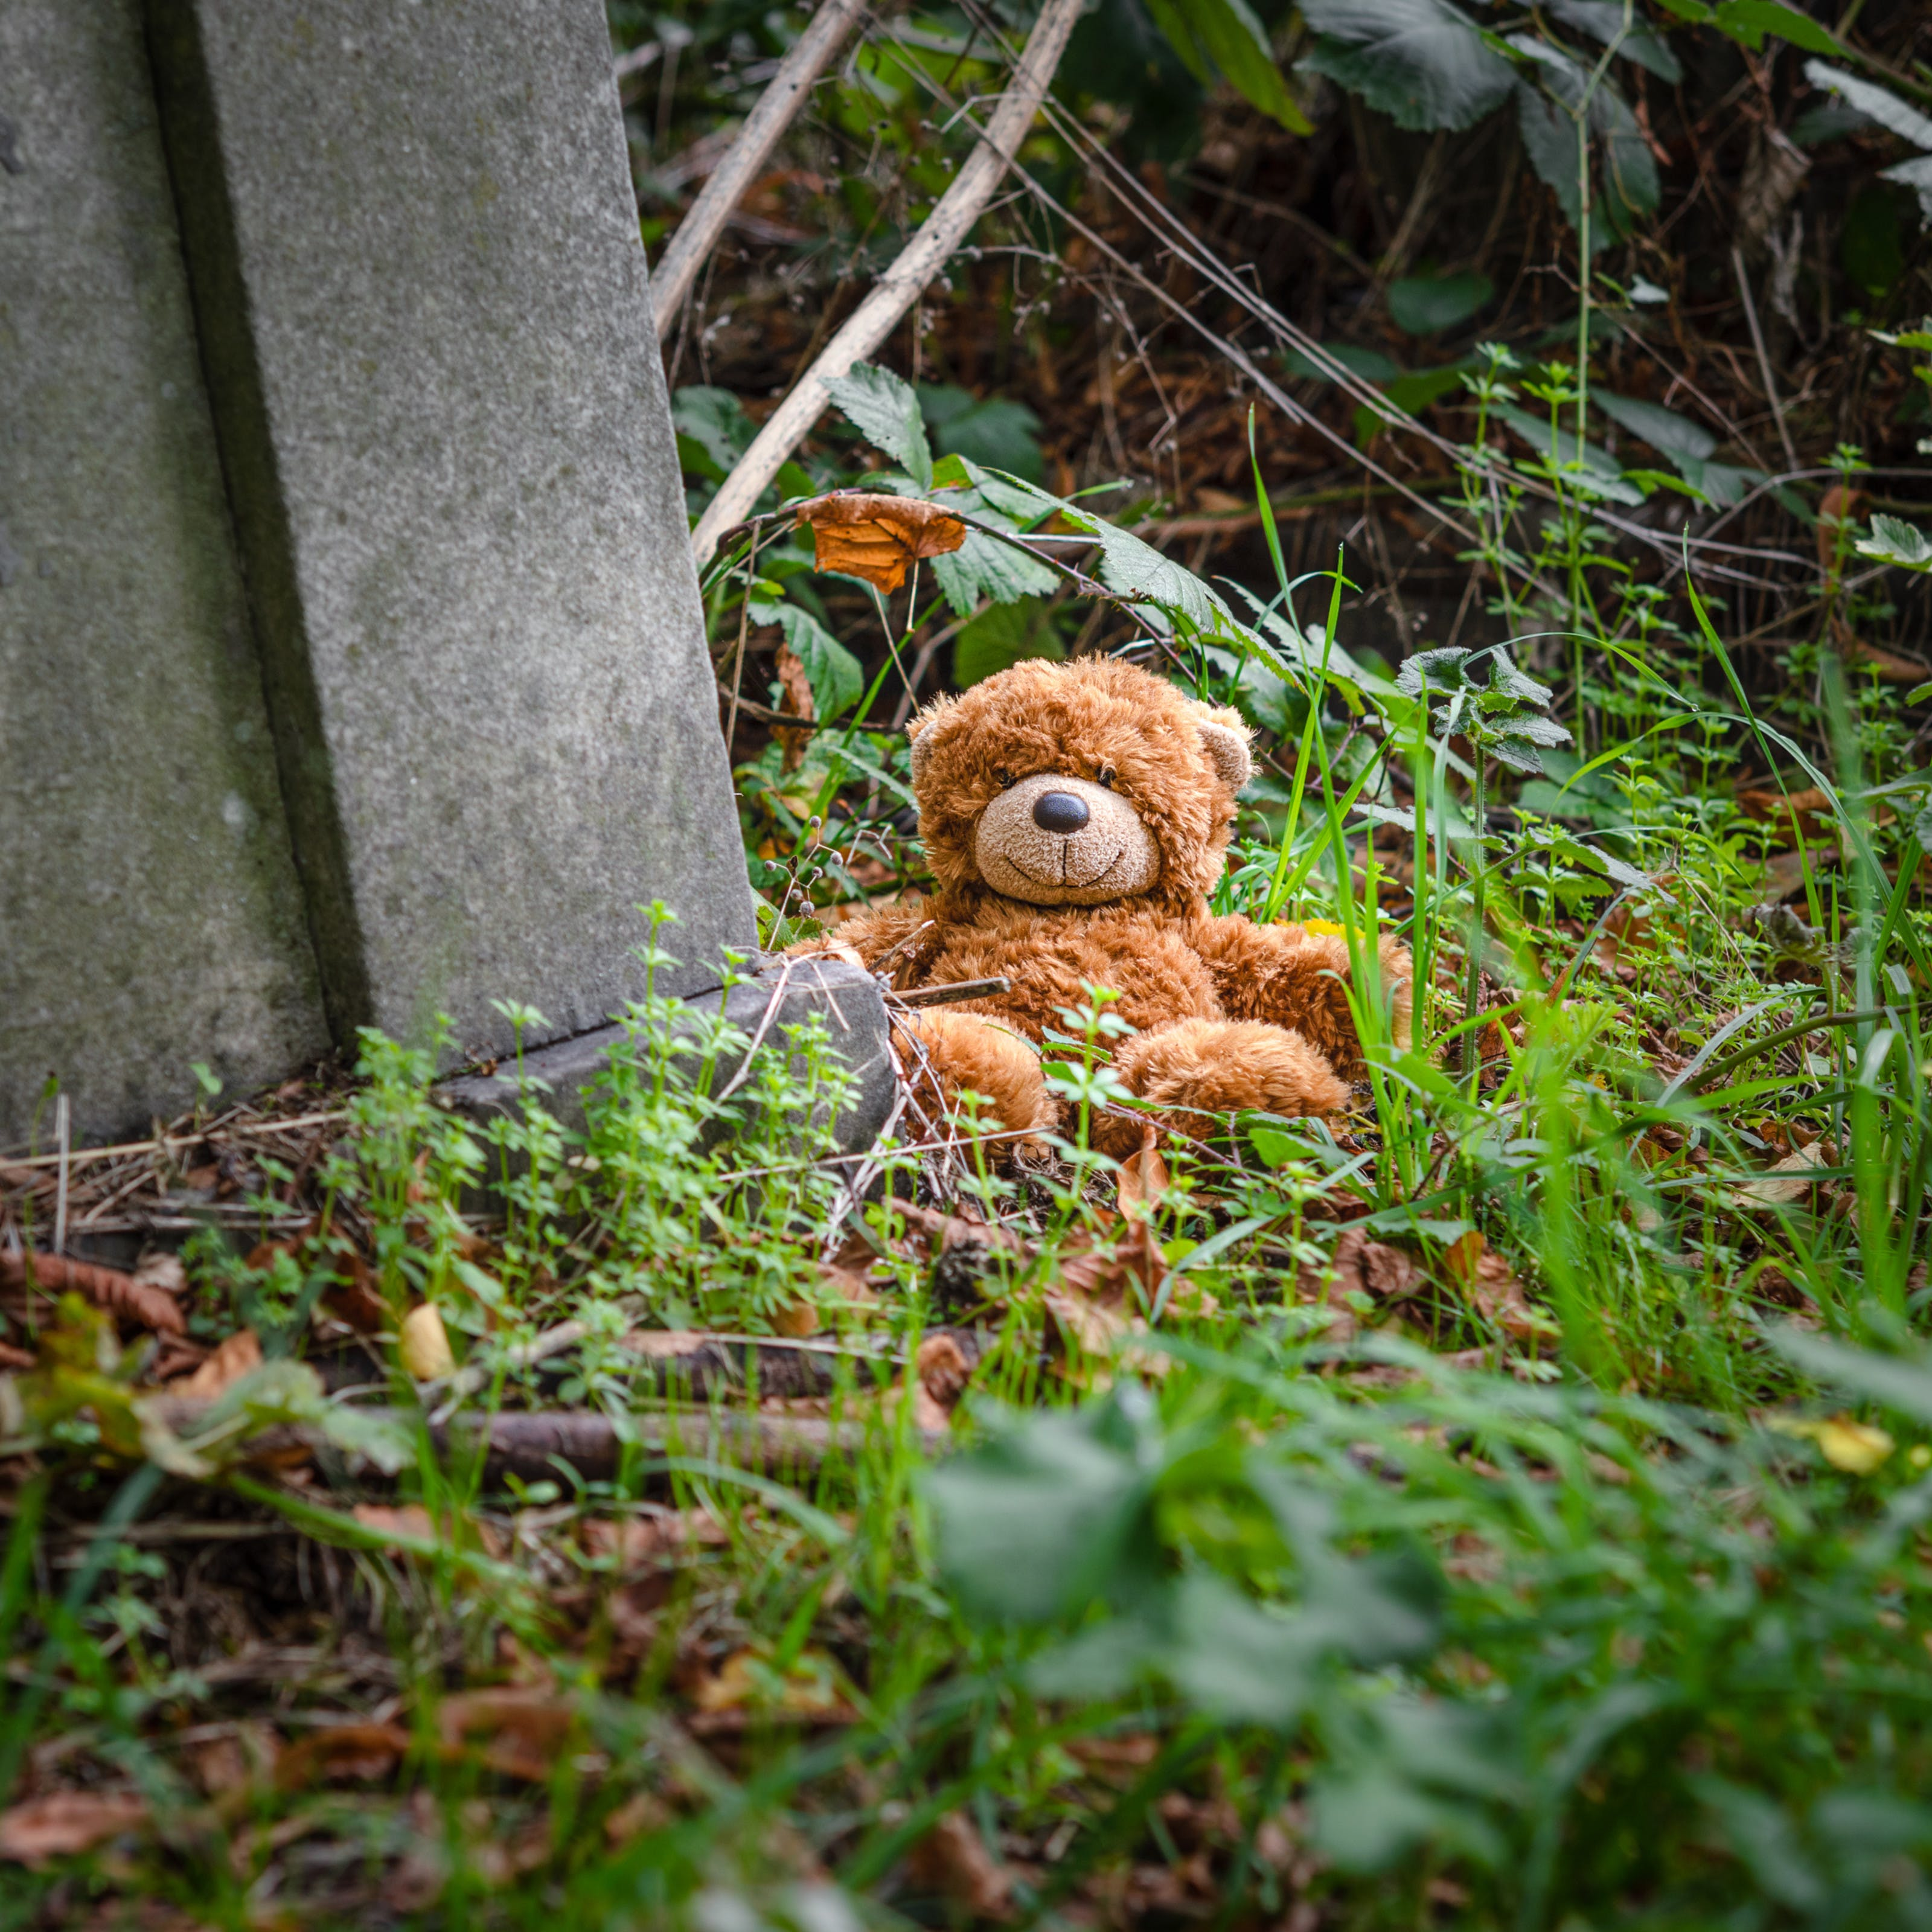 Photograph of small teddy bear sitting within the surroundings of a cemetery, with grave stones and ivy.